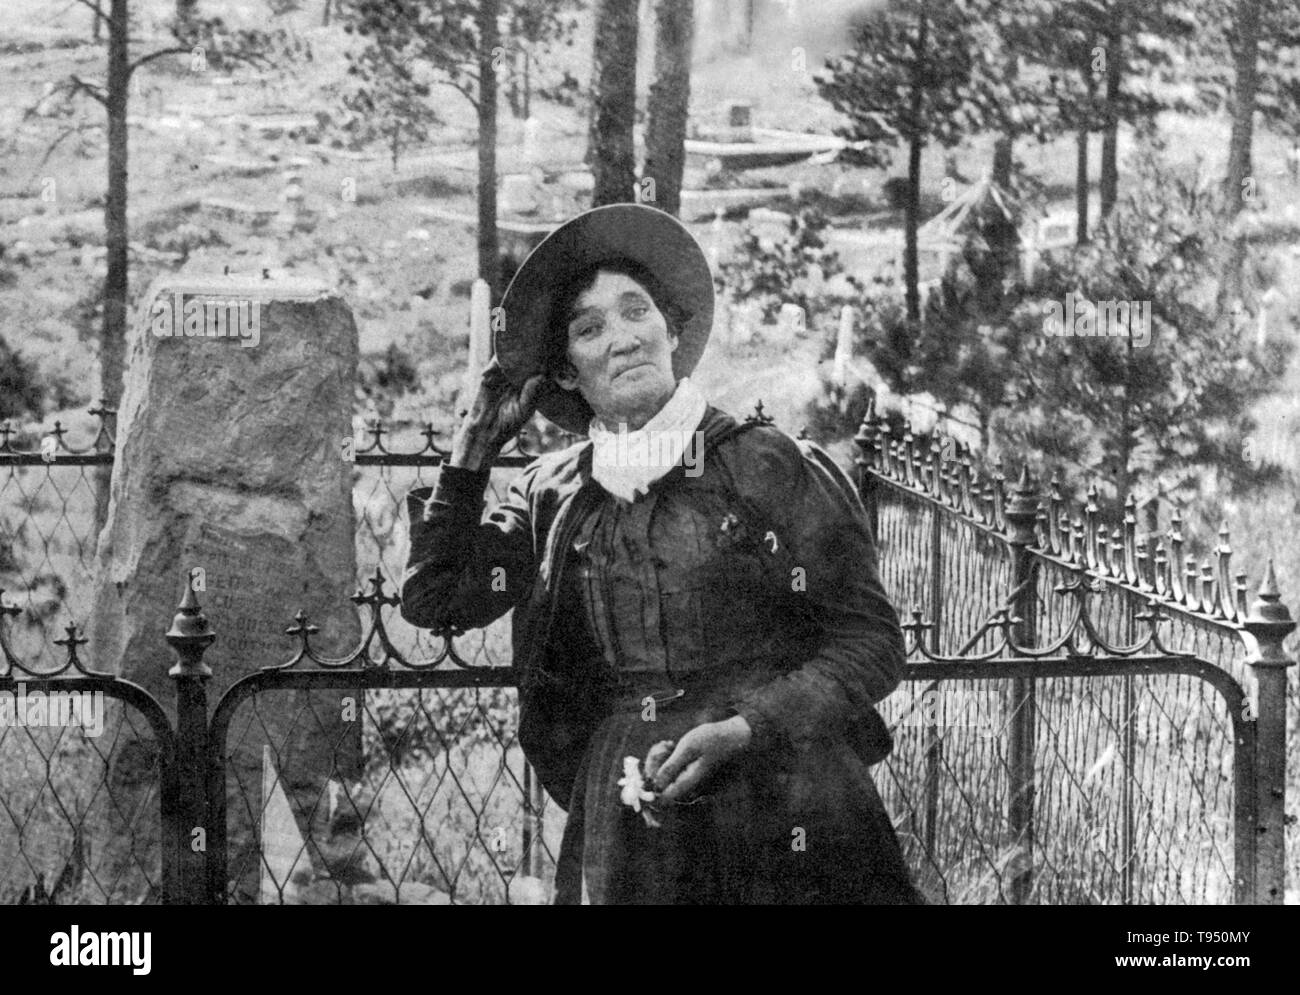 Calamity Jane, standing by the grave of Wild Bill Hickok, photogrpahed by J.A. Kumpf, 1903. Martha Jane Canary (May 1, 1852 - August 1, 1903), better known as Calamity Jane, was an American frontierswoman and professional scout. She received little to no formal education and was illiterate. She worked as a dishwasher, a cook, a waitress, a dance-hall girl, a nurse, and an ox team driver. In 1874, she found work as a scout at Fort Russell. In 1876, she settled in the area of Deadwood and became friendly with Wild Bill Hickok and Charlie Utter. After Hickok's death she continued living in the De - Stock Image